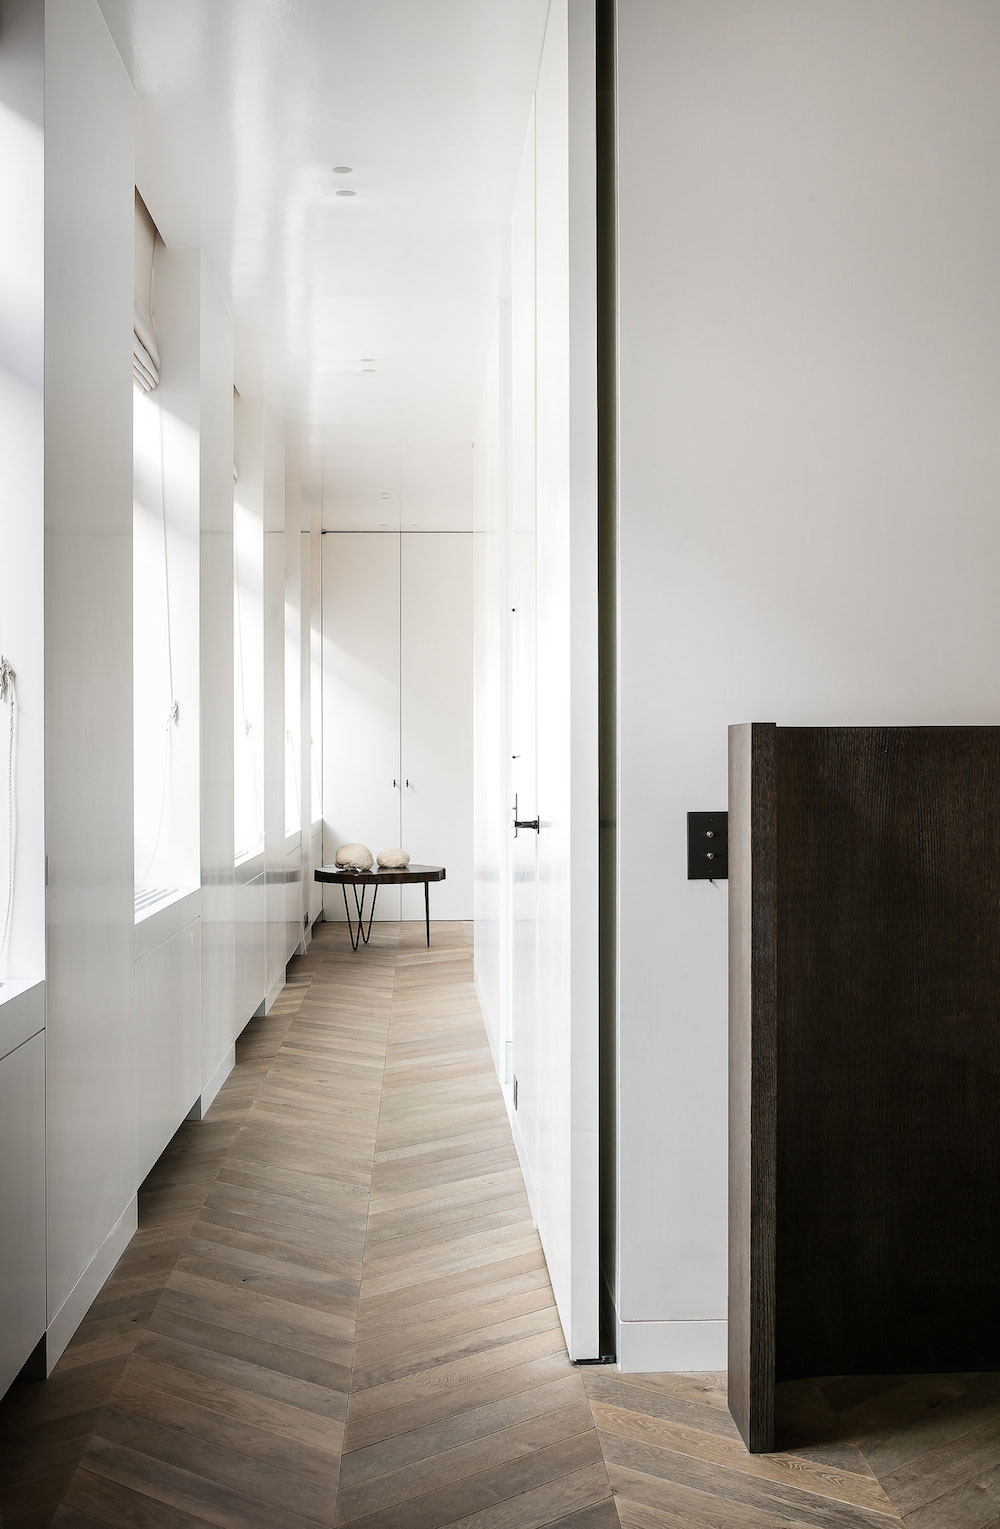 MK-House-Antwerp-by-Nicolas-Schuybroek-Architects-marble-interiors-tour-oracle-fox